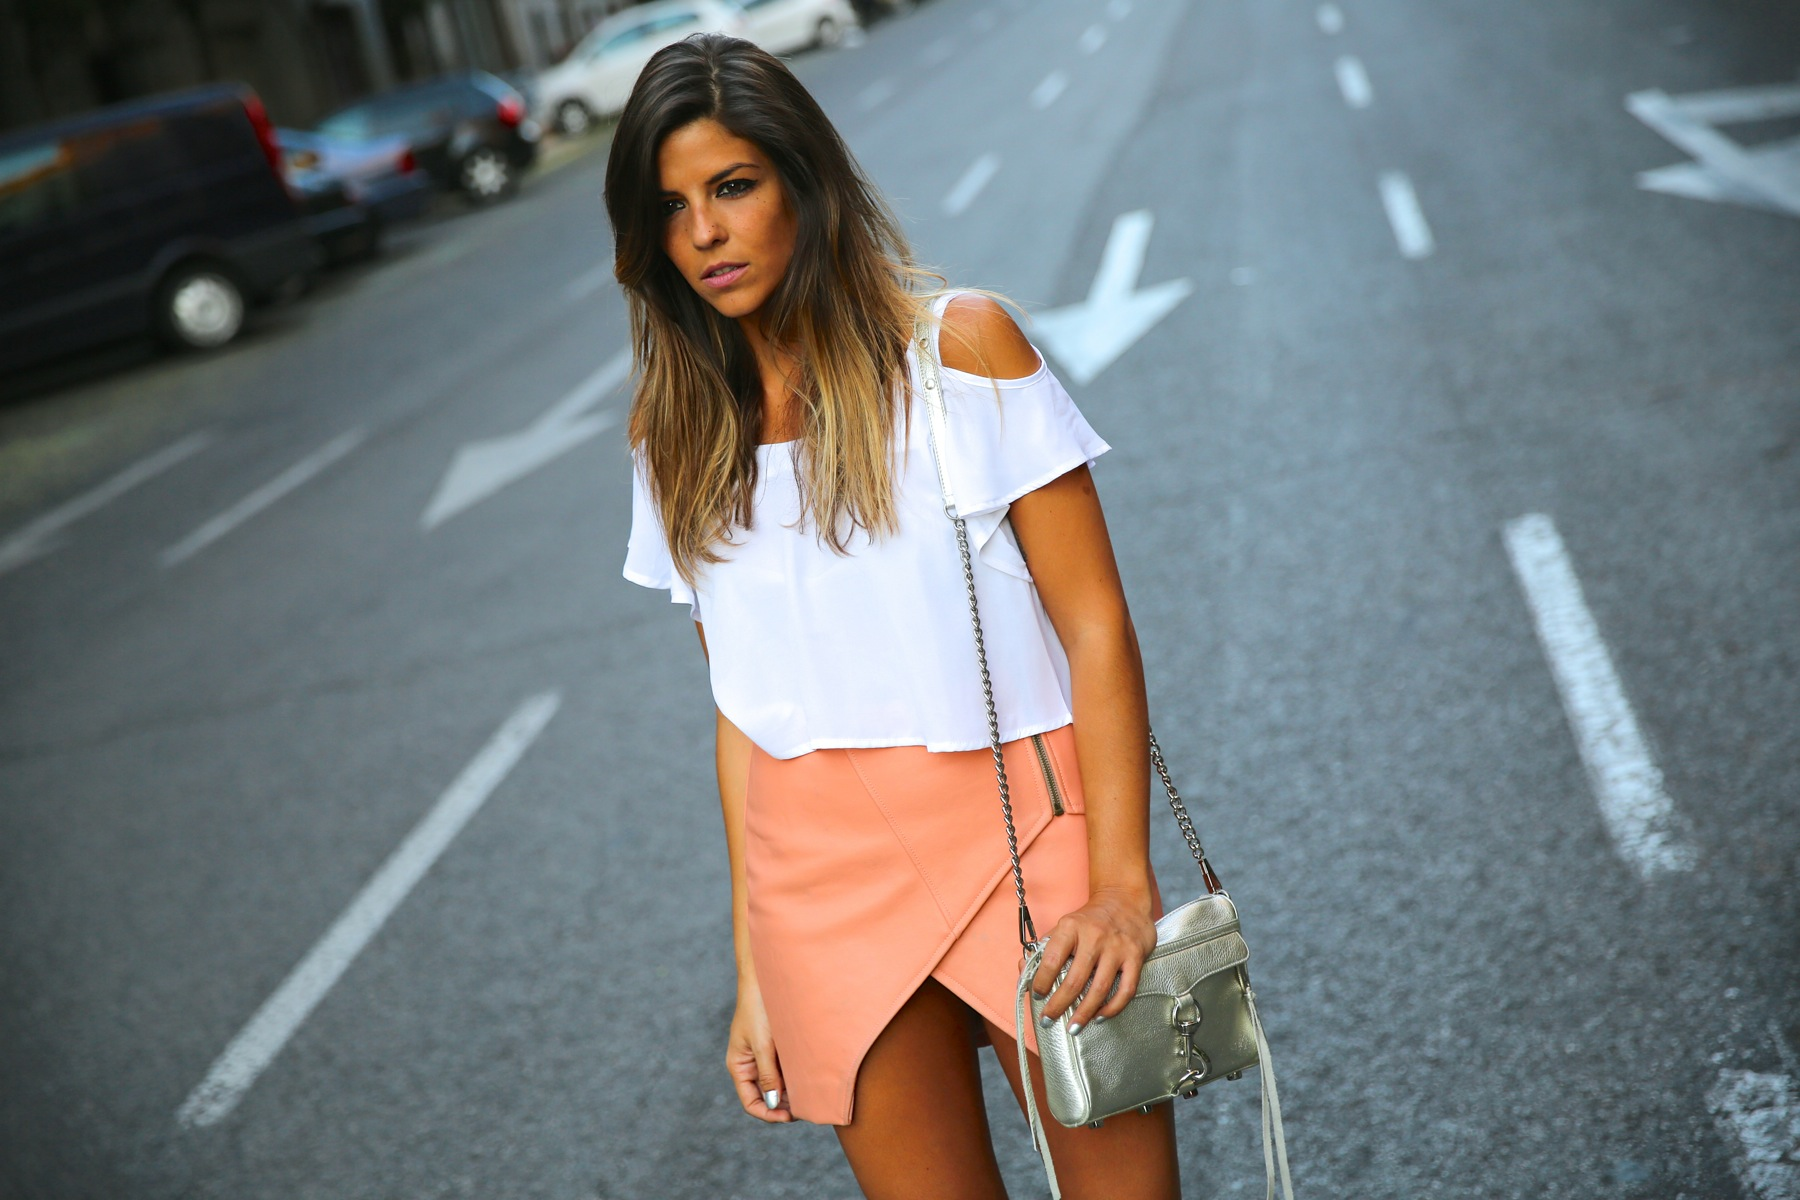 trendy_taste-look-outfit-street_style-ootd-blog-blogger-fashion_spain-moda_españa-madrid-silver_stilettos-punta_plata-estiletos-falda_coral-coral_skirt-top-3